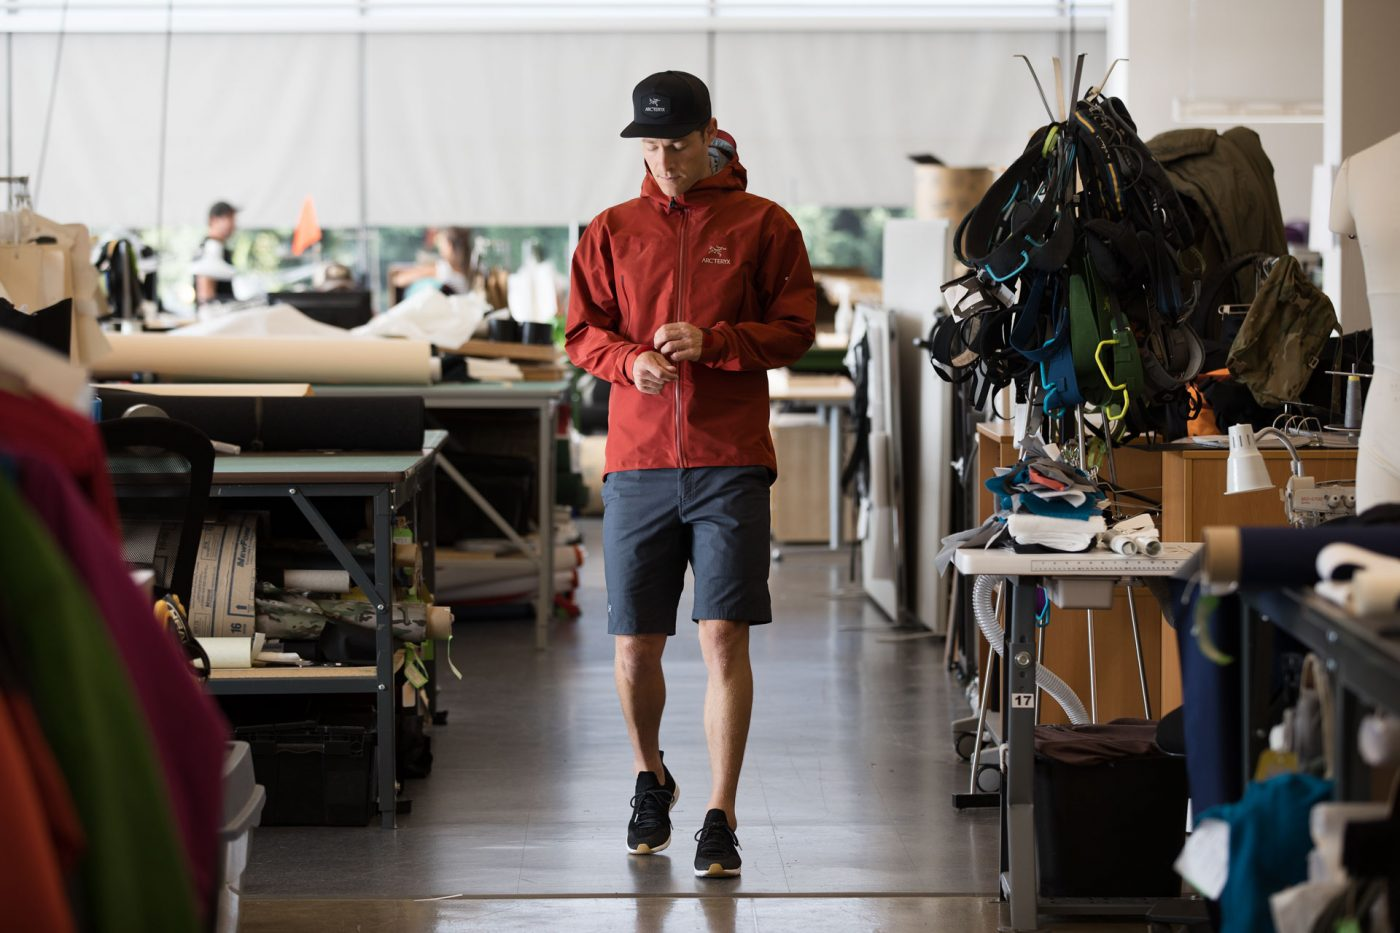 Cleaning up messes with Drummond Lawson, Director of Social and Environmental Sustainability at Arc'teryx